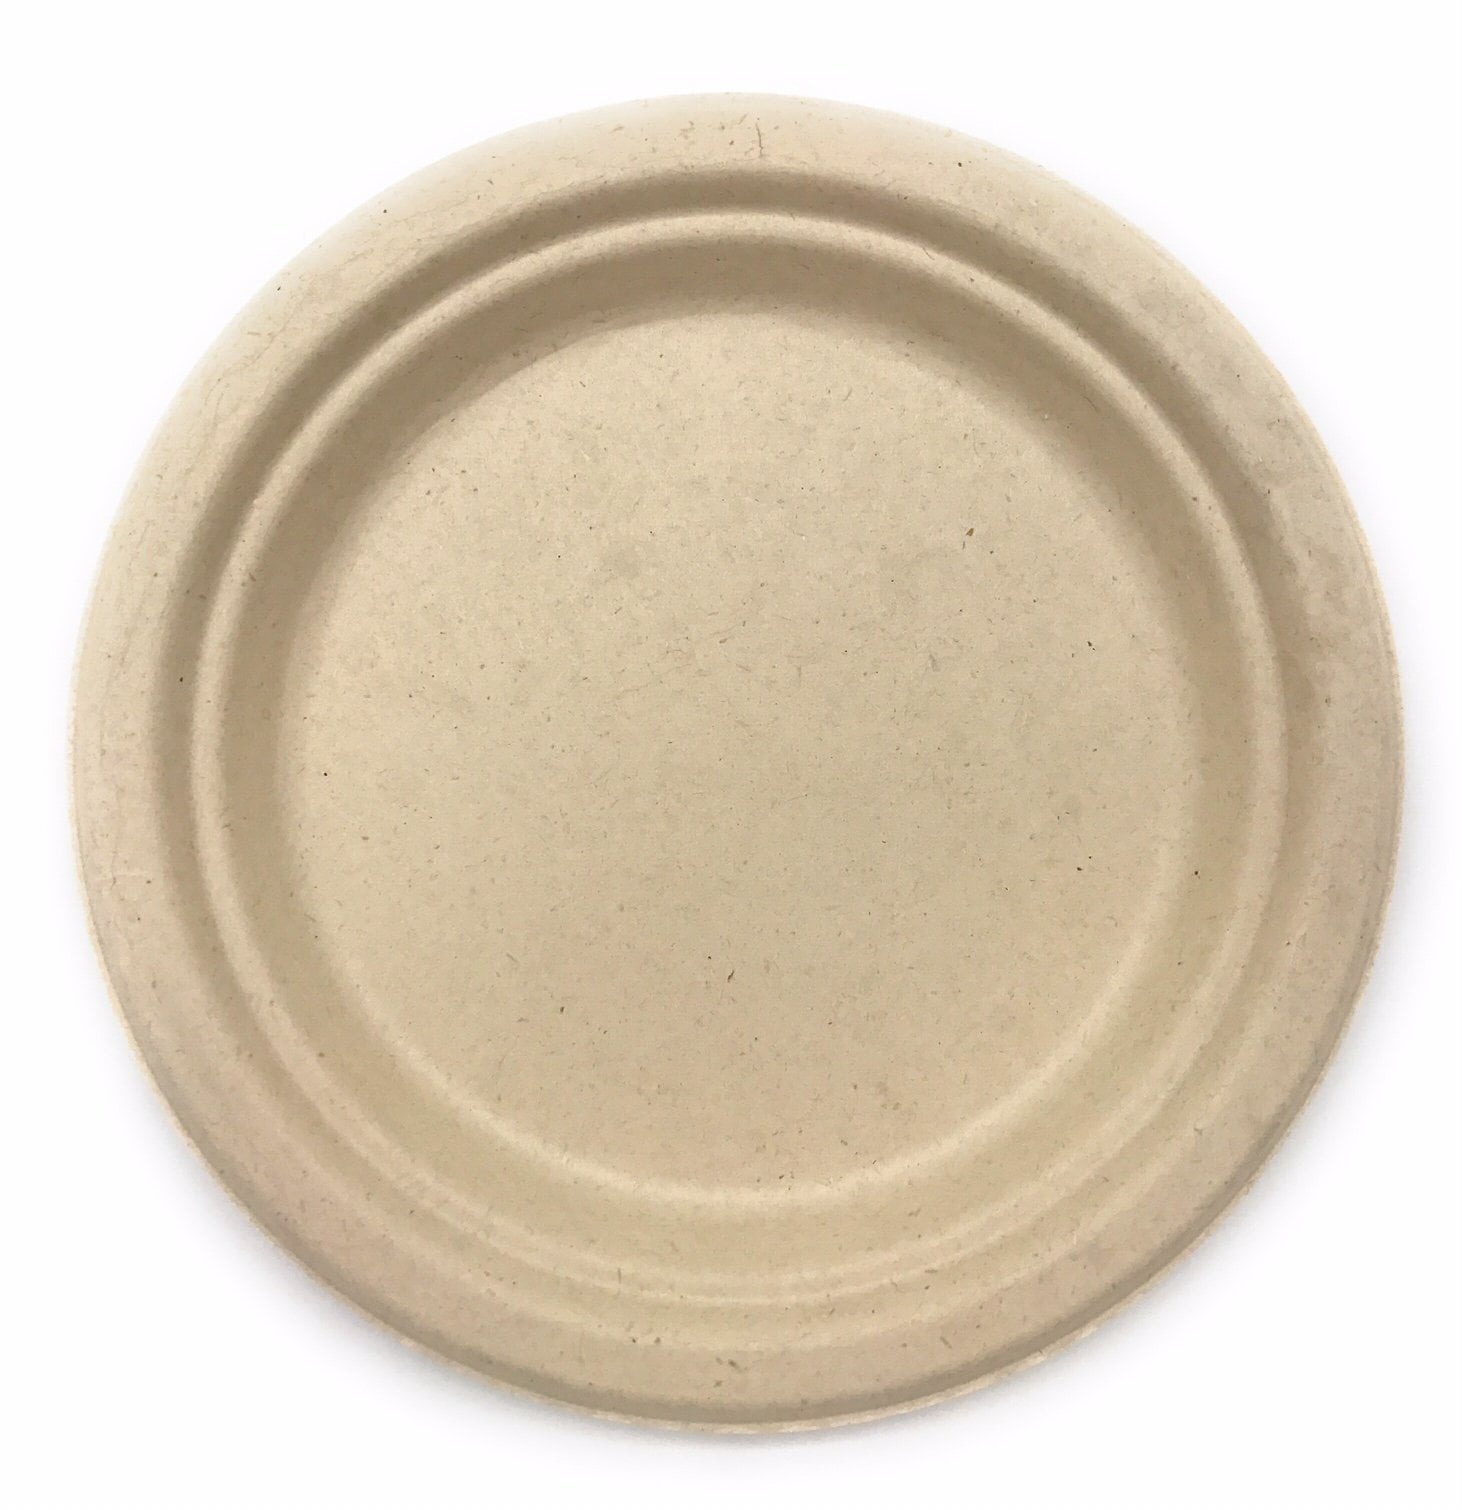 125 Pcs 7 In Round Disposable Plates Natural Sugarcane Bagasse Bamboo Fibers Sturdy Seven Inch Compostable Eco Friendly Environmental Paper Plate Alternative 100 By Product Tree Plastic Free Walmart Com Walmart Com